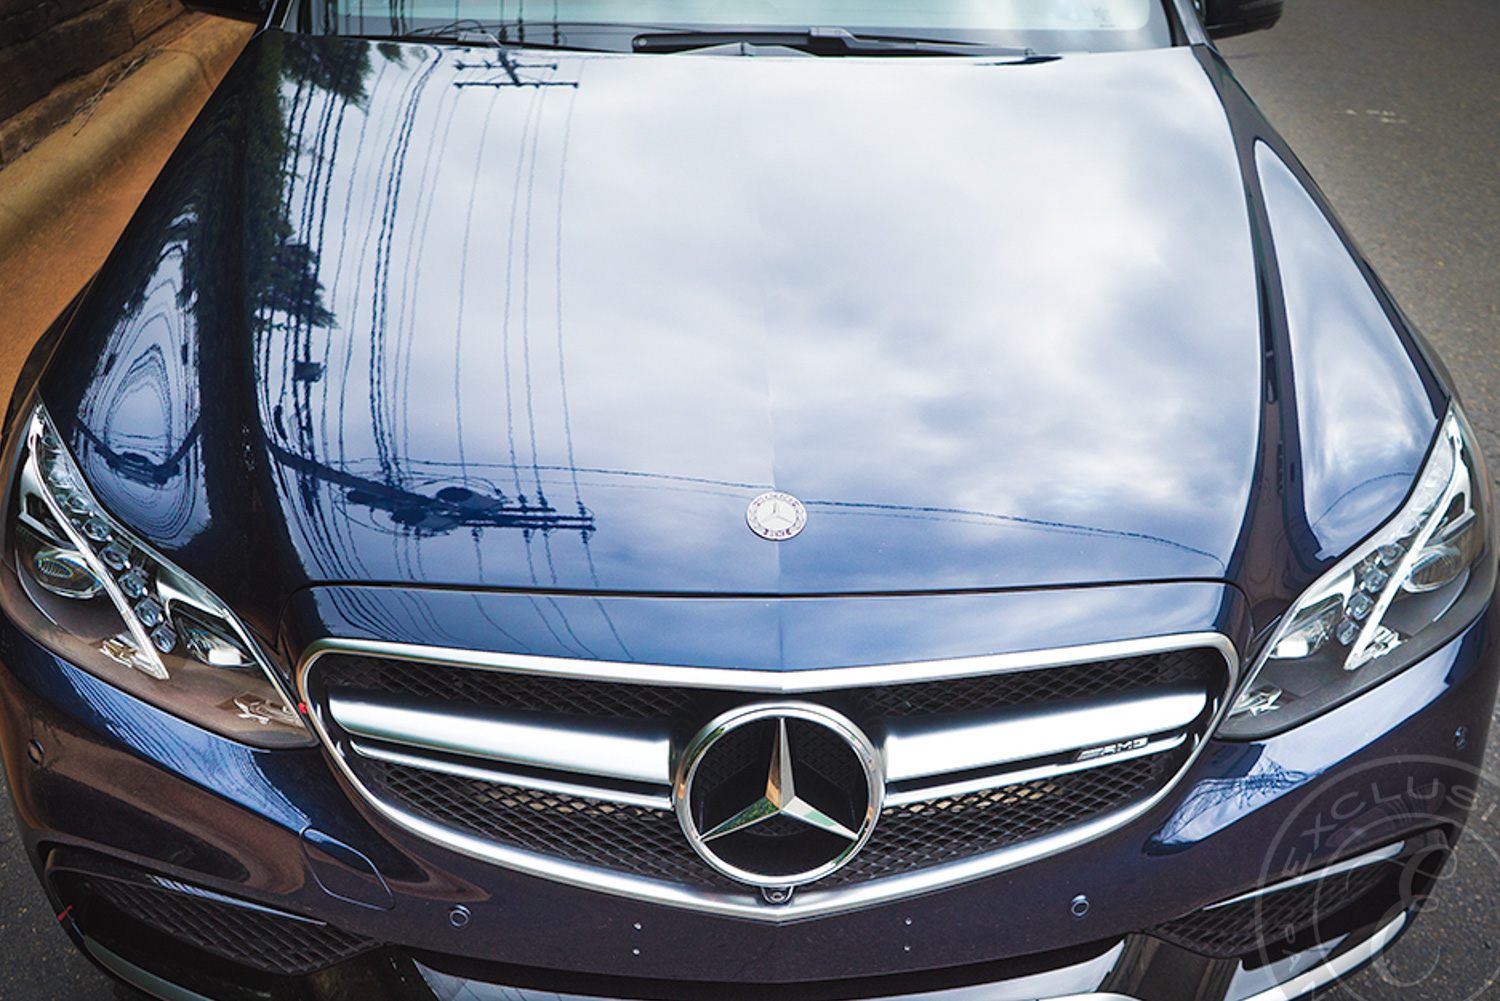 AMG E 63 After Paint Correction